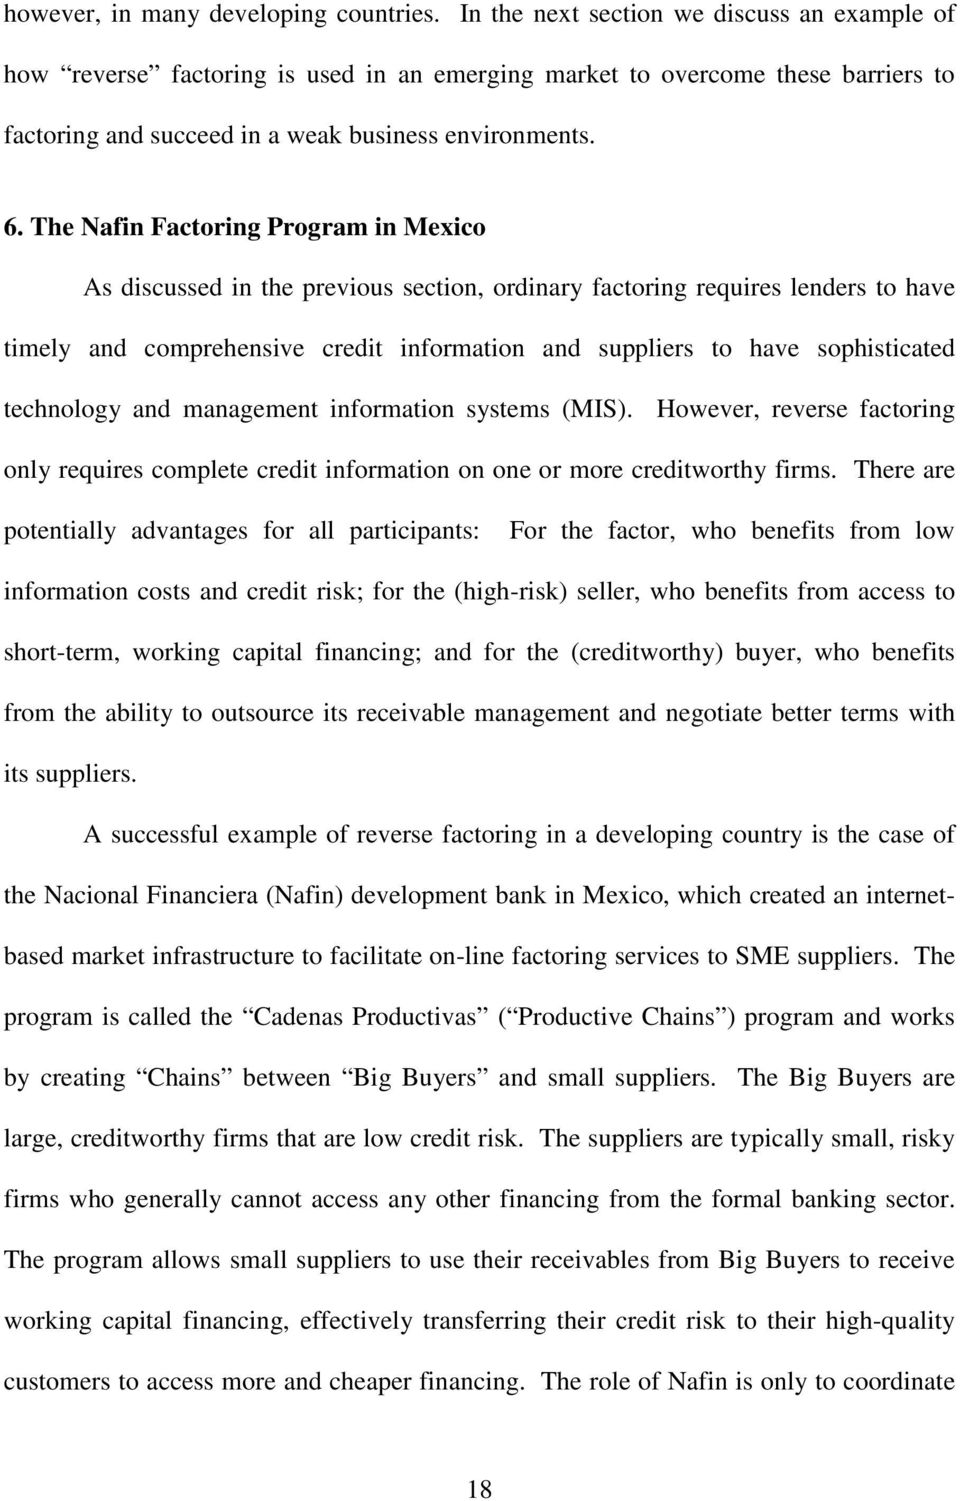 The Nafin Factoring Program in Mexico As discussed in the previous section, ordinary factoring requires lenders to have timely and comprehensive credit information and suppliers to have sophisticated